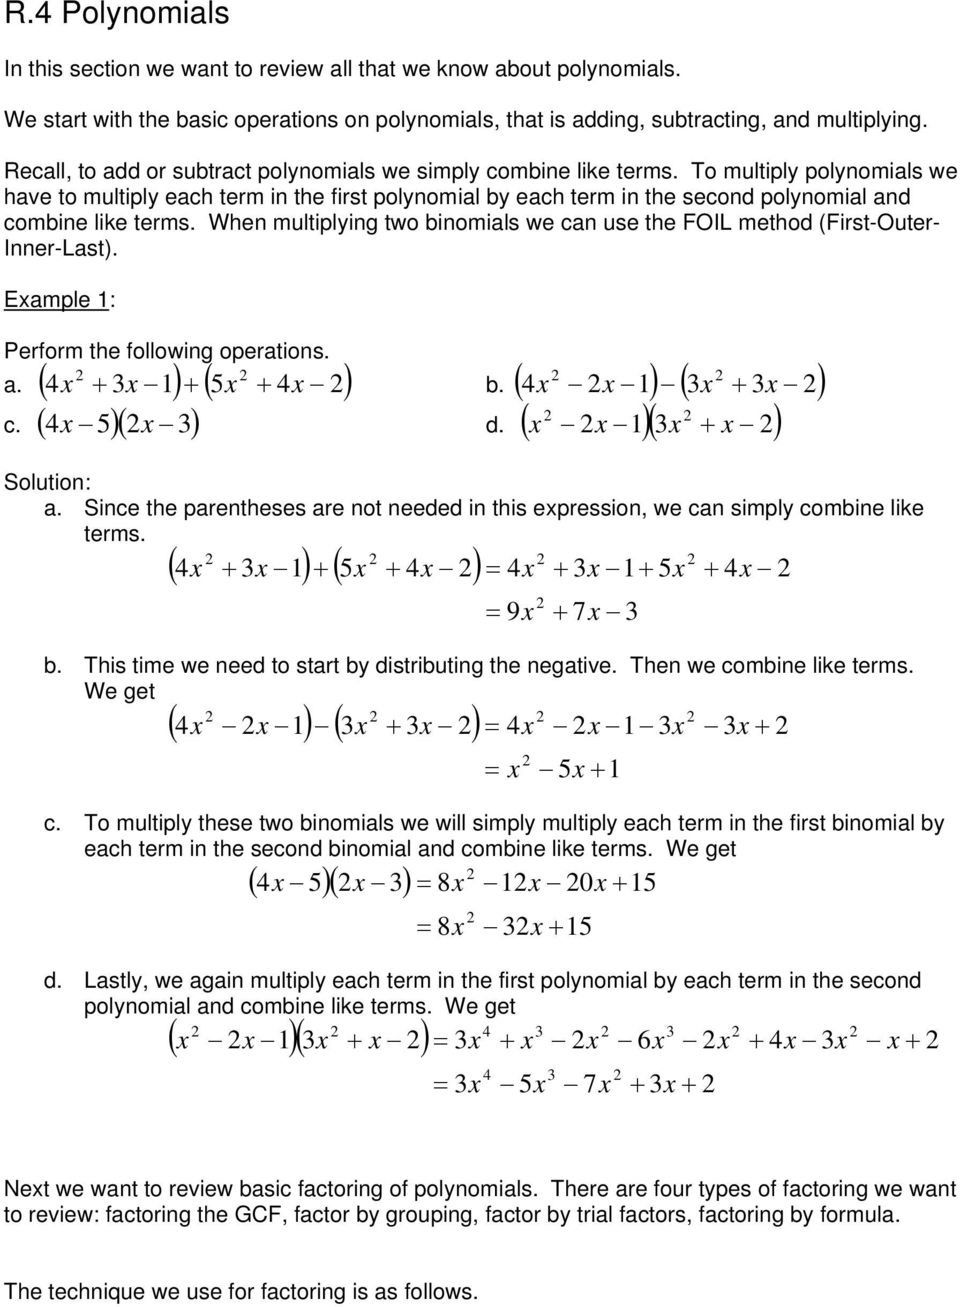 Operations With Polynomials Worksheet